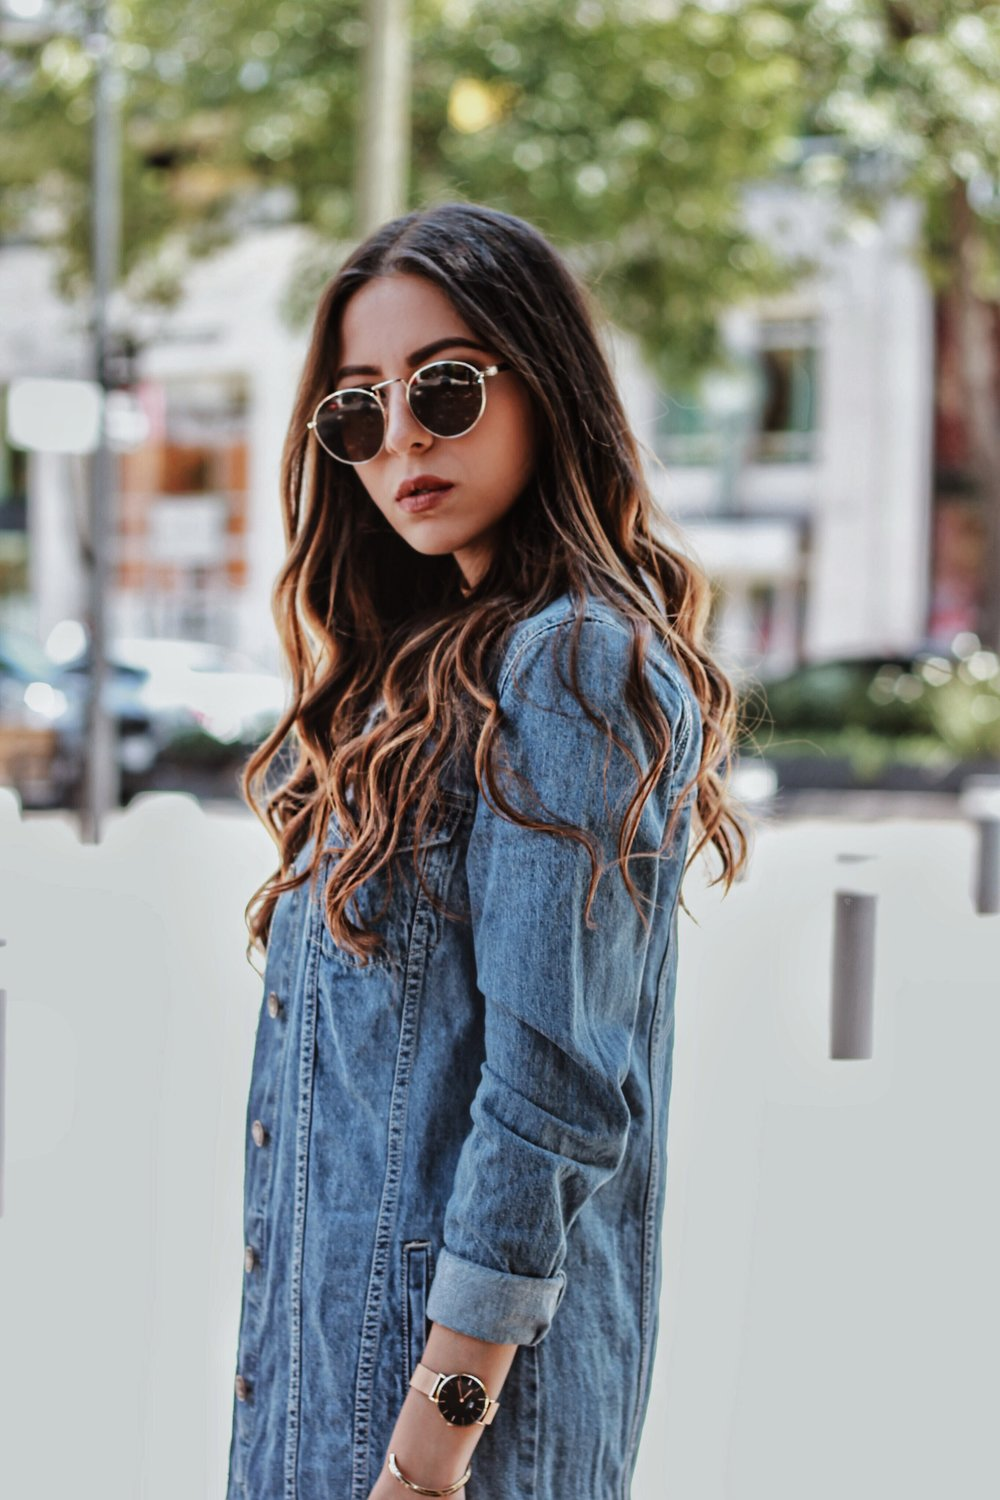 denim-jacket-and-black-outfit